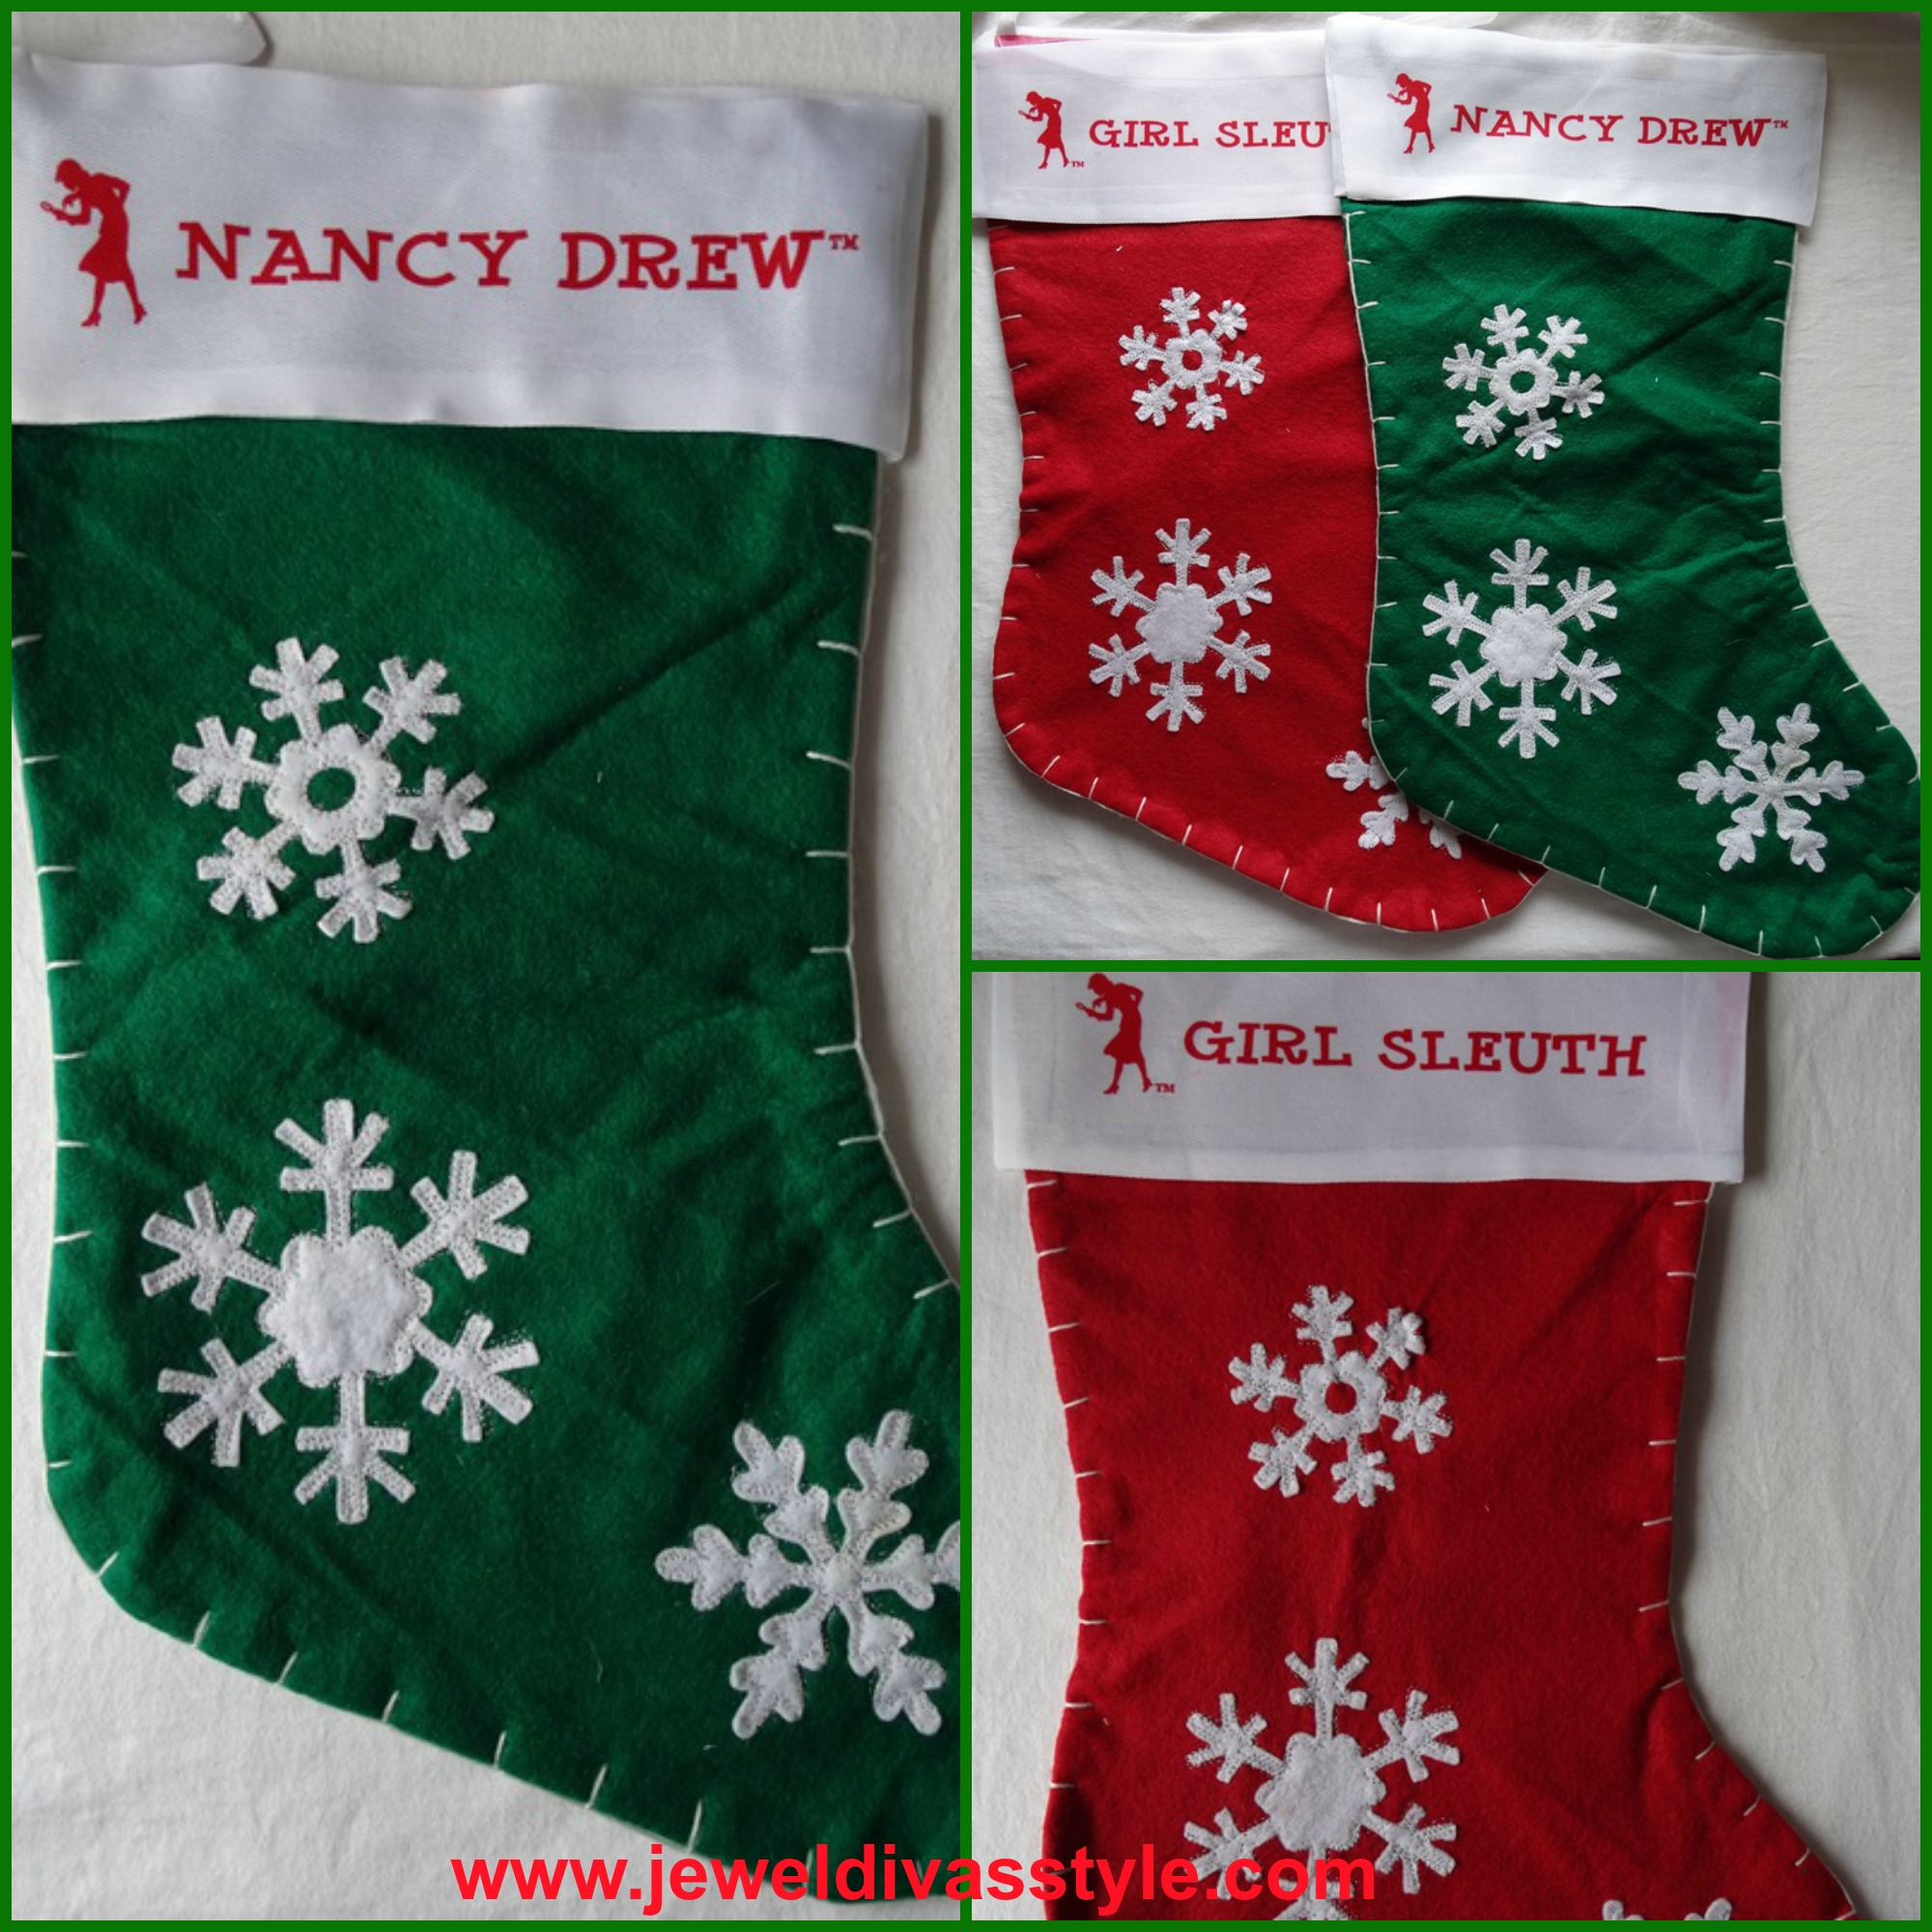 NANCY DREW STOCKINGS